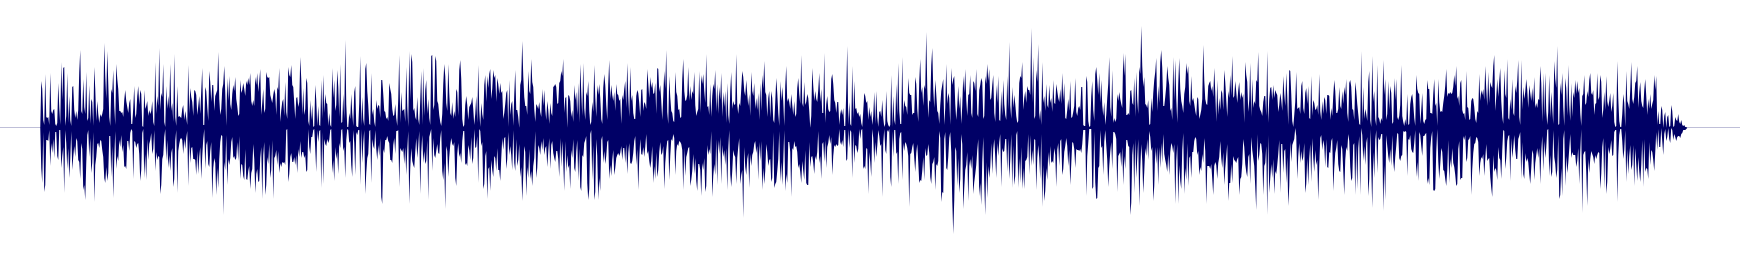 waveform of track #101436